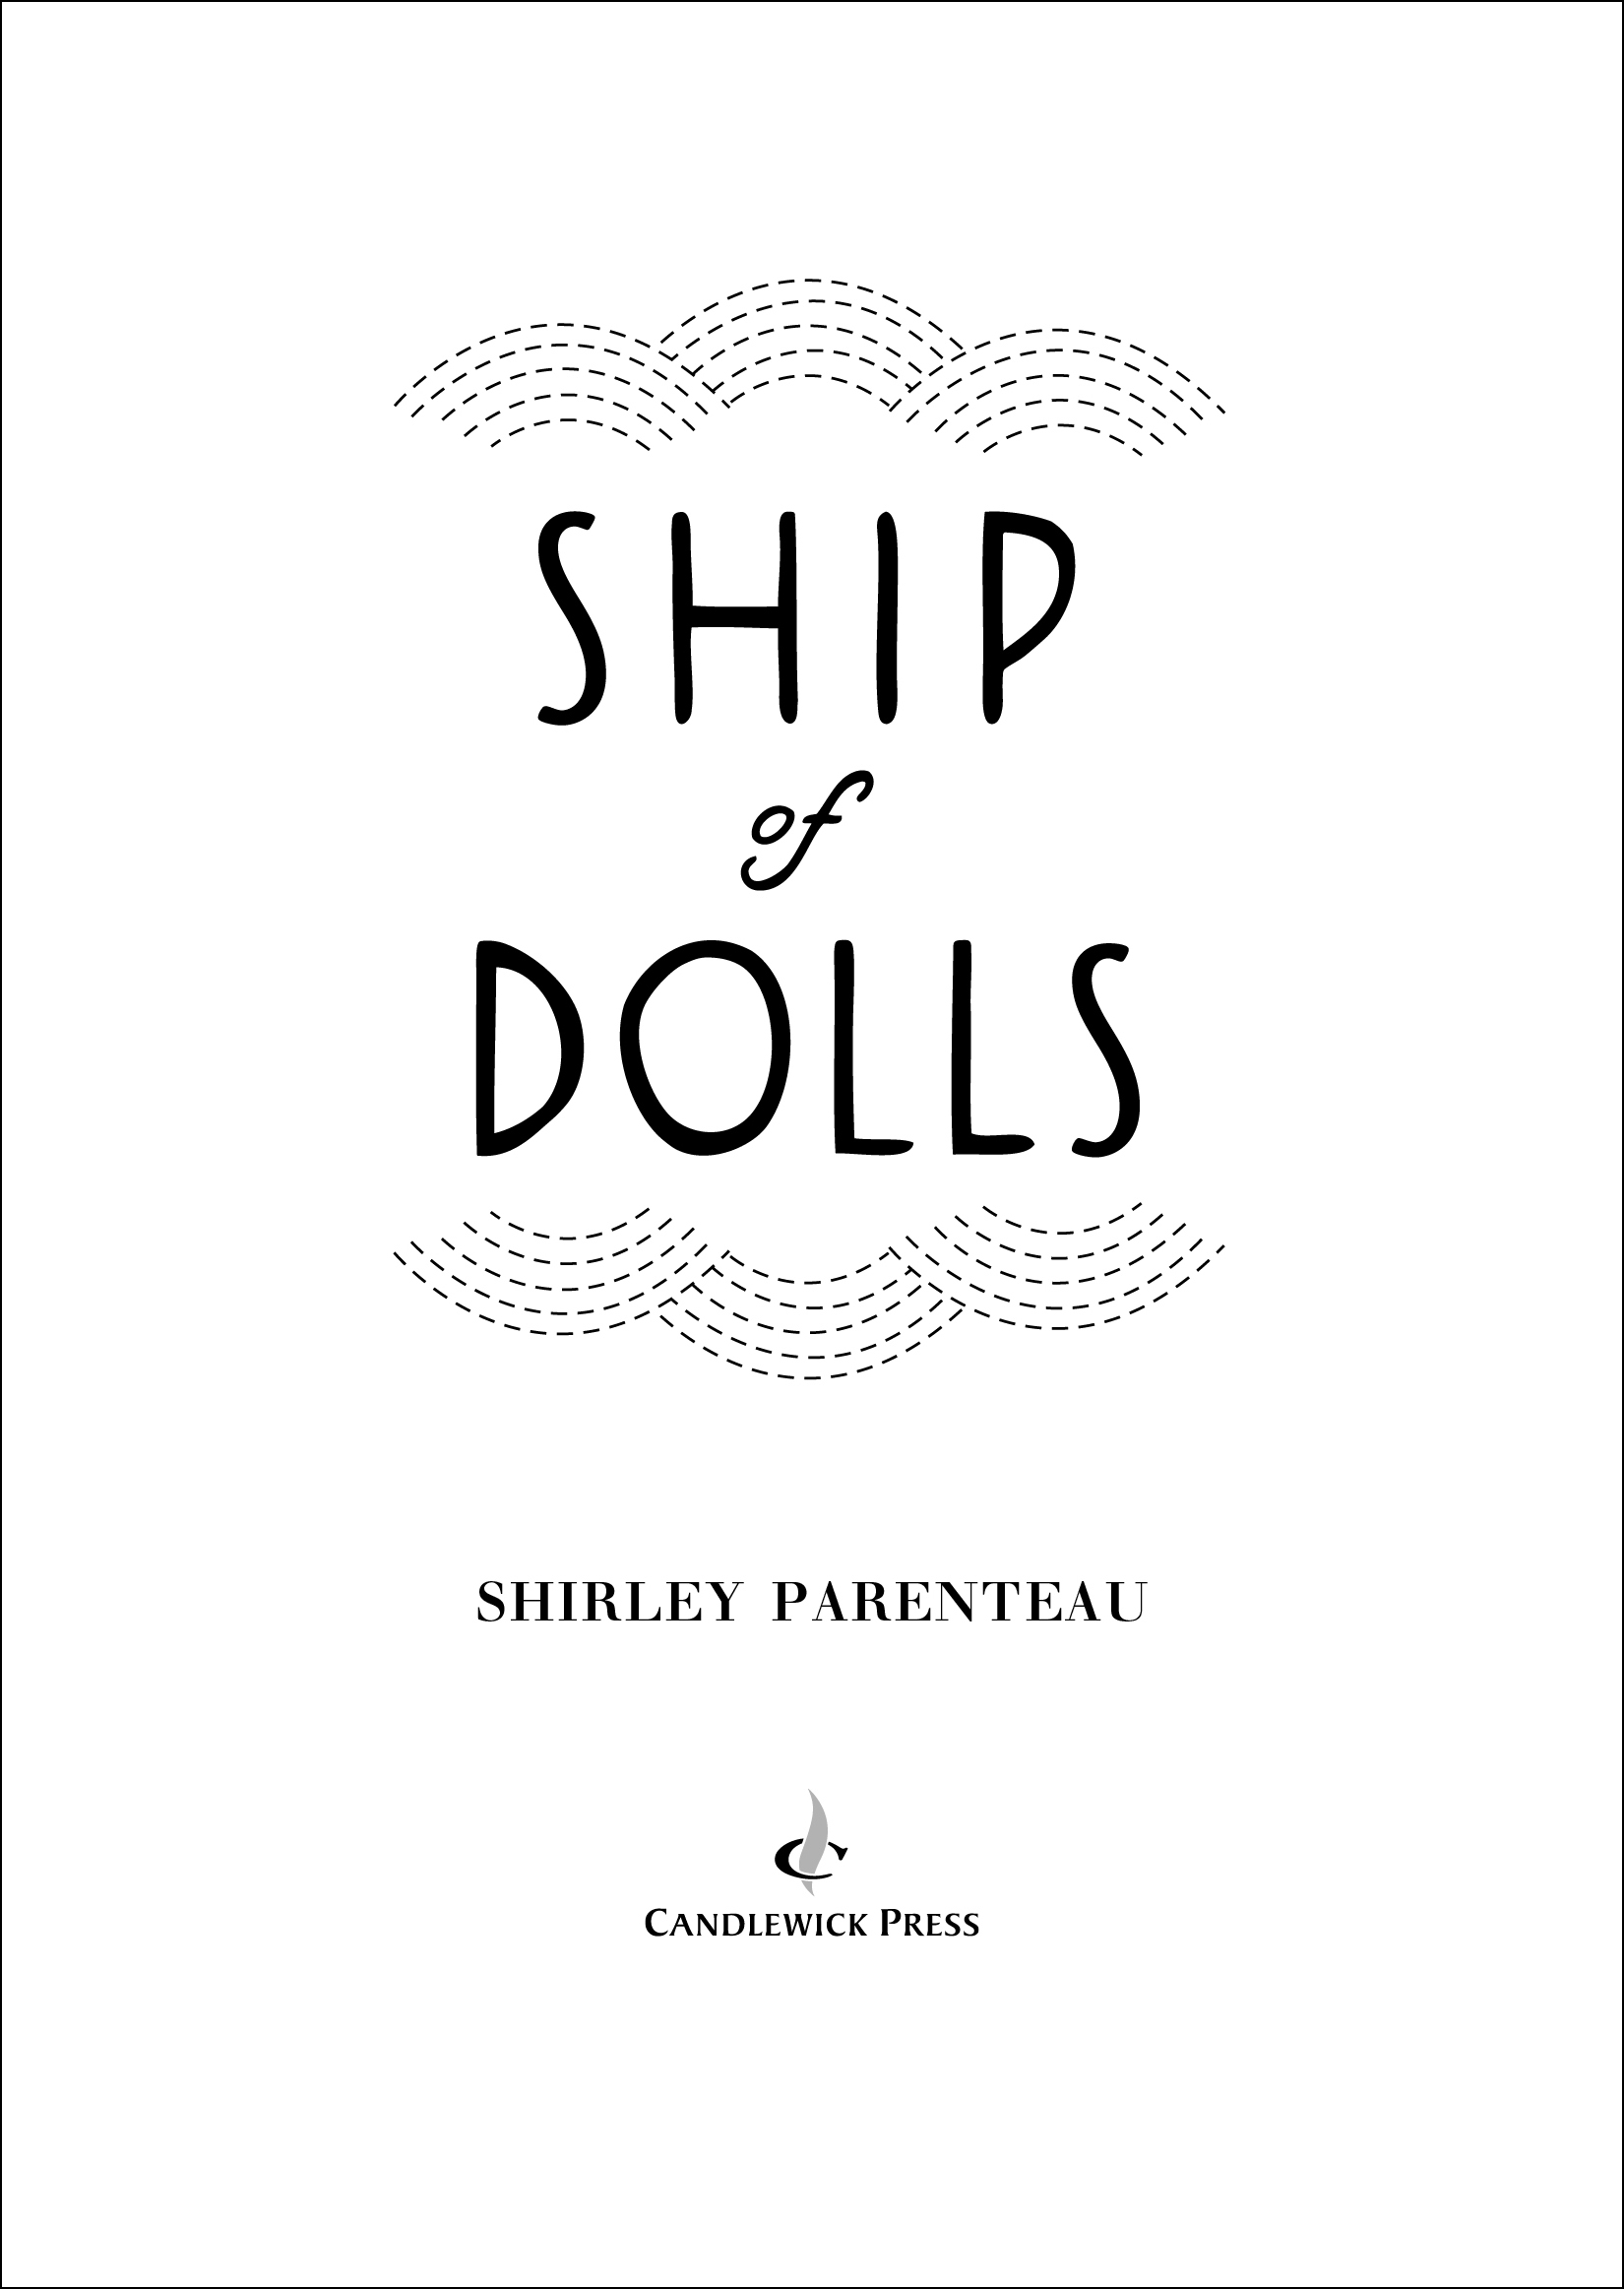 Title page for SHIP OF DOLLS